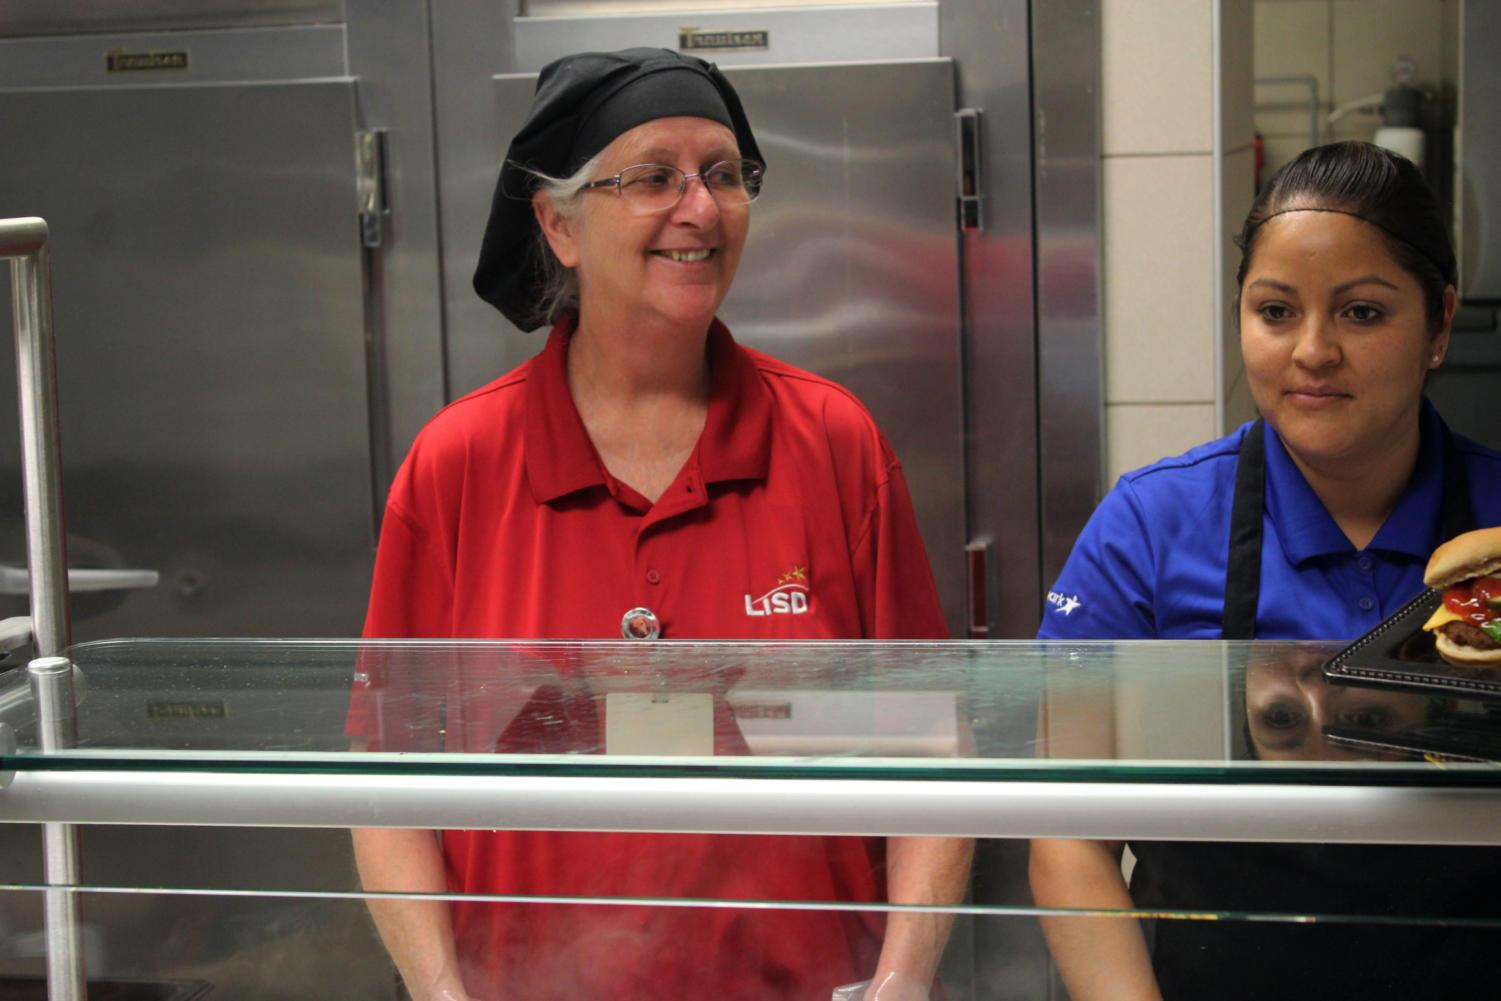 Head cafeteria worker Penny Potter enjoys happy students coming through the lines.